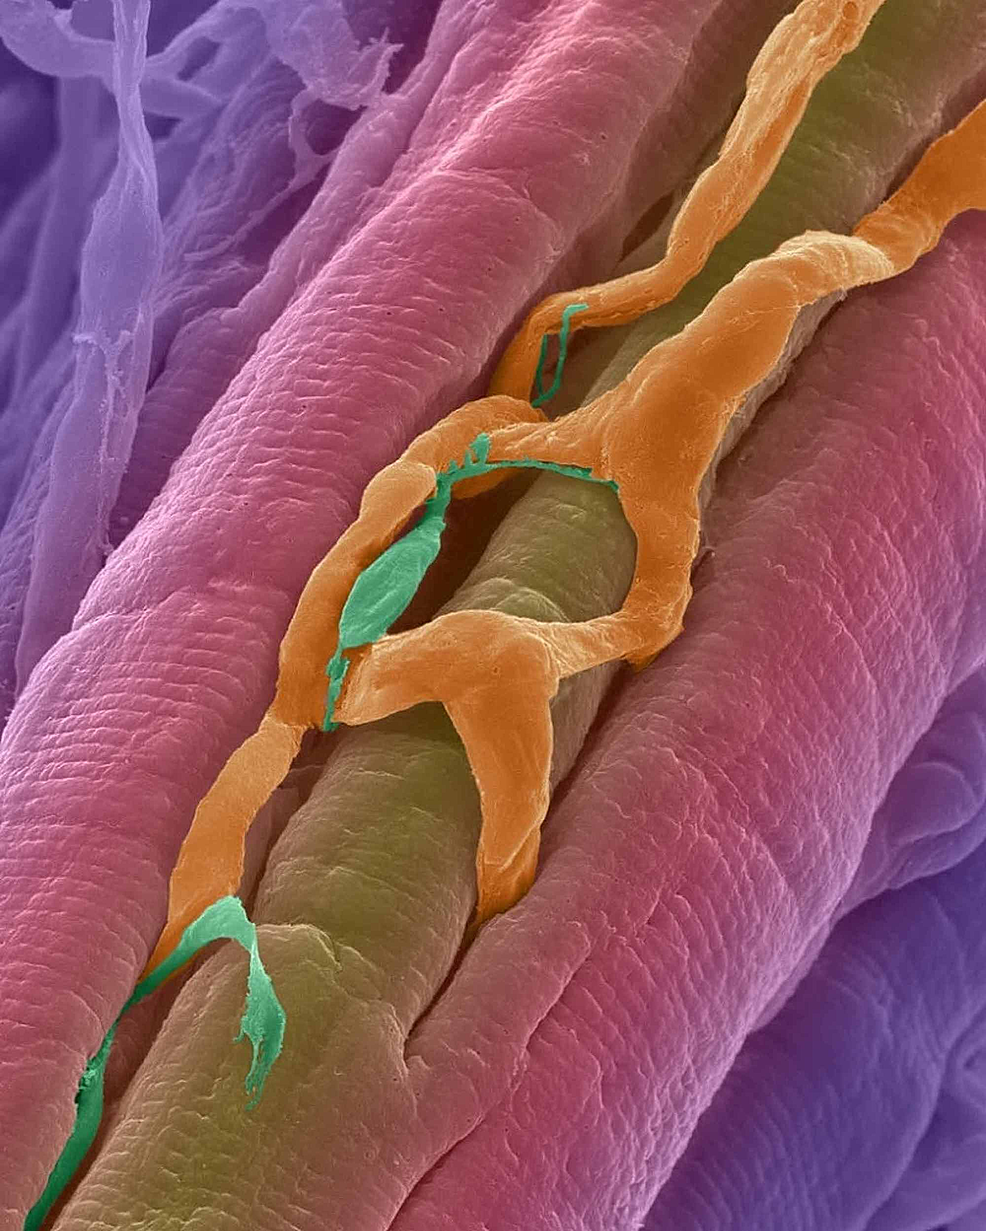 The-orange-reticulated-in-this-scanning-electron-micrograph-is-made-up-of-blood-vessels-intersecting-the-cardiac-muscle-fibers-(in-pink).